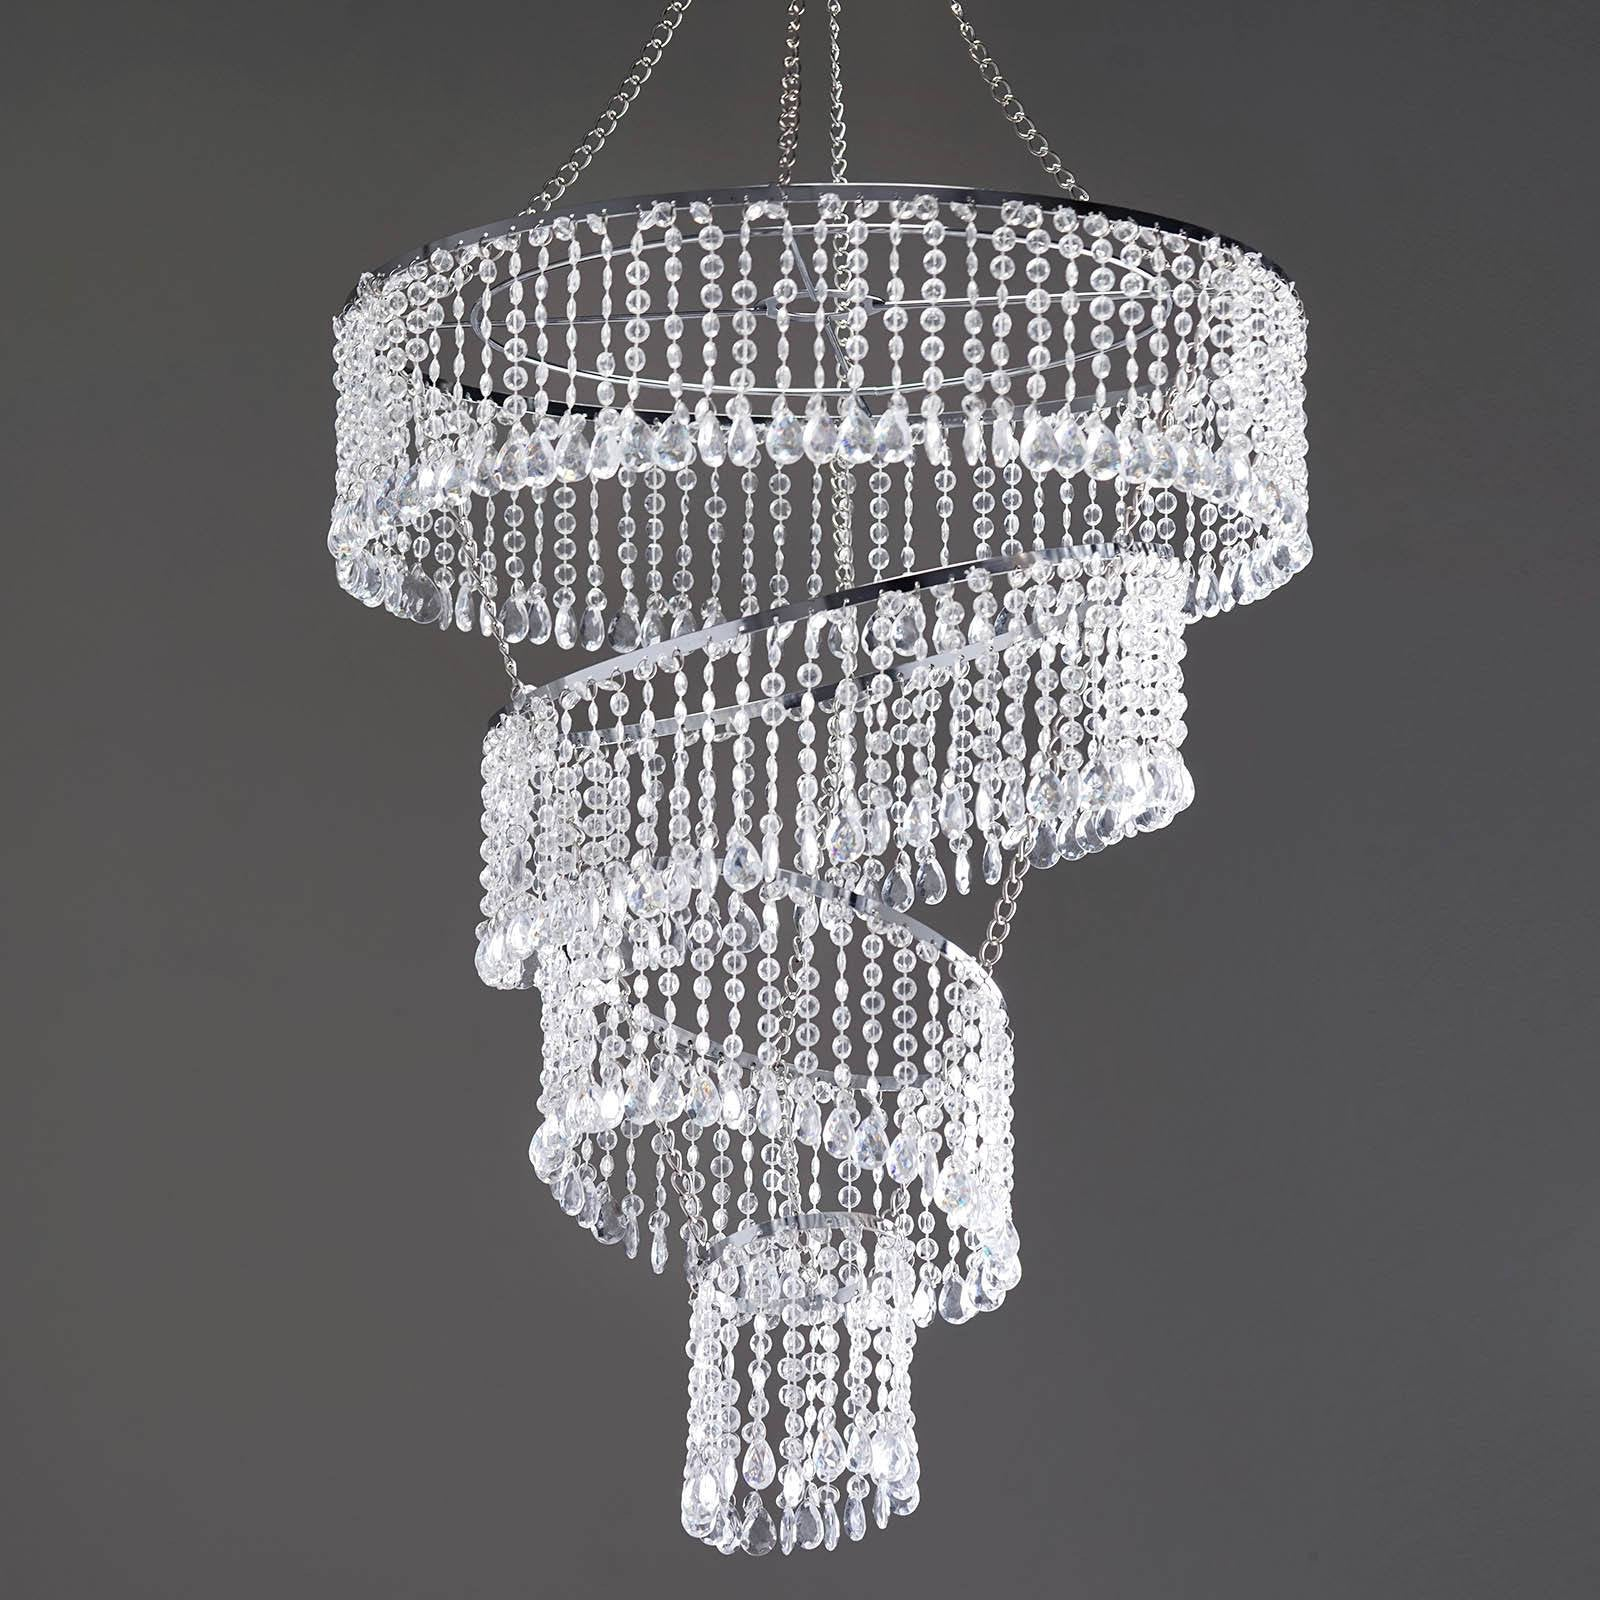 crystal pendant lighting. 4 Tier Mordern Crystal Pendant Lighting Diamond Chandelier - 18\